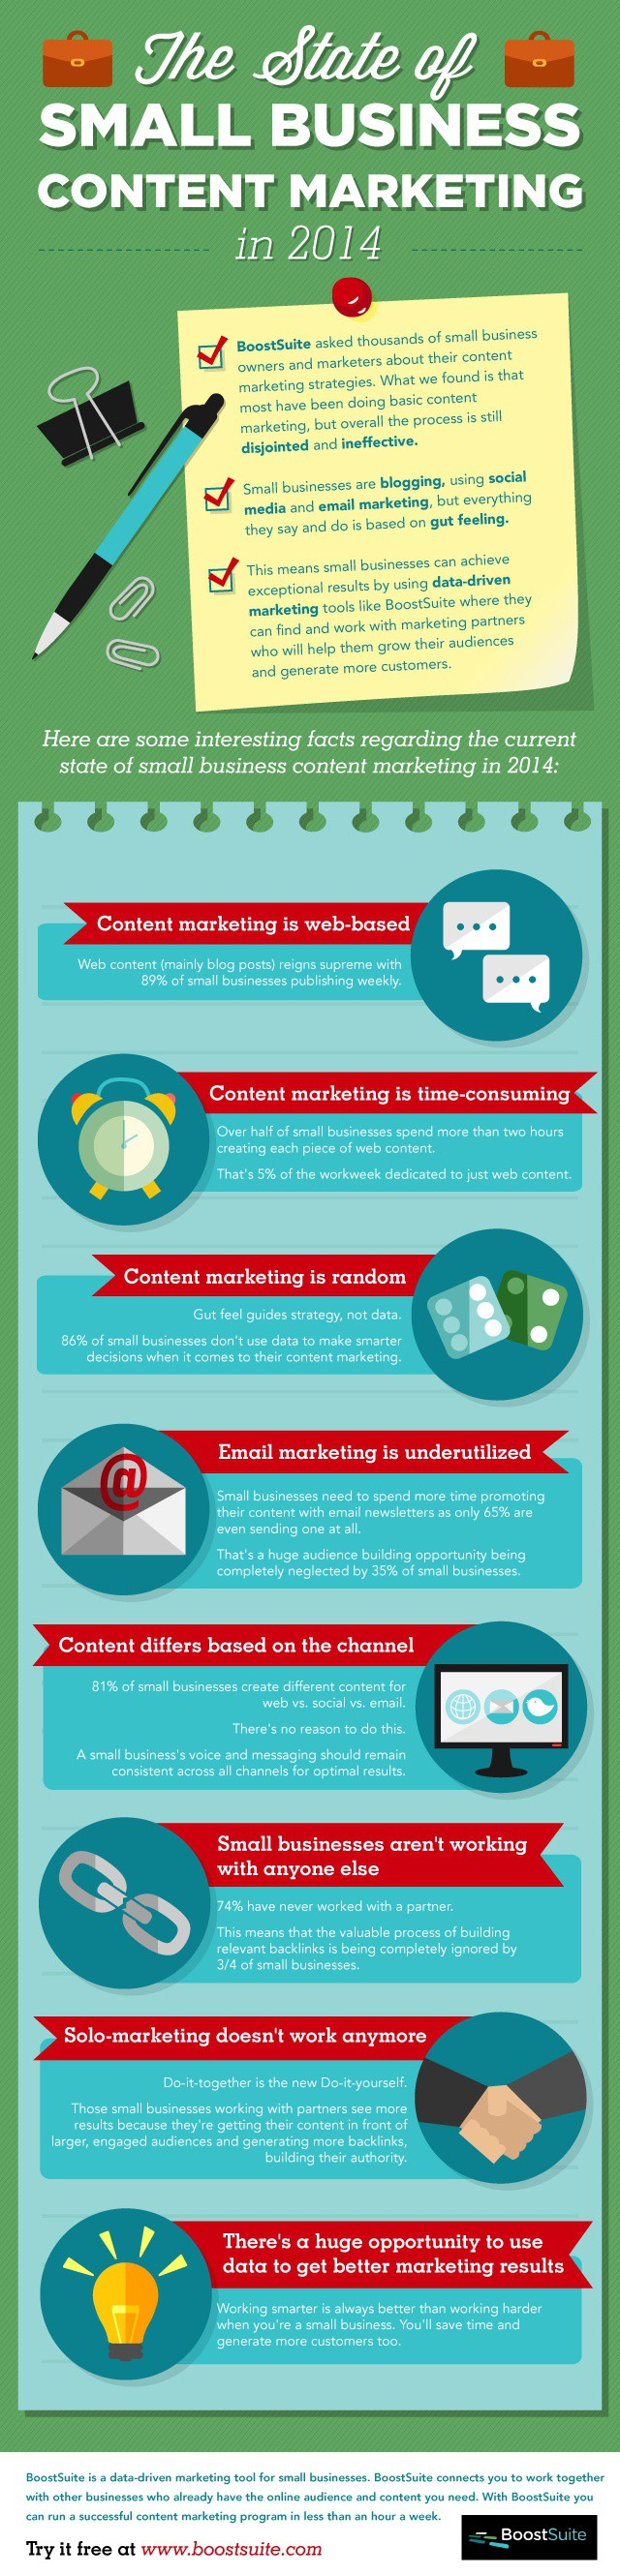 State of Small Business Content Marketing in 2014 by BoostSuite